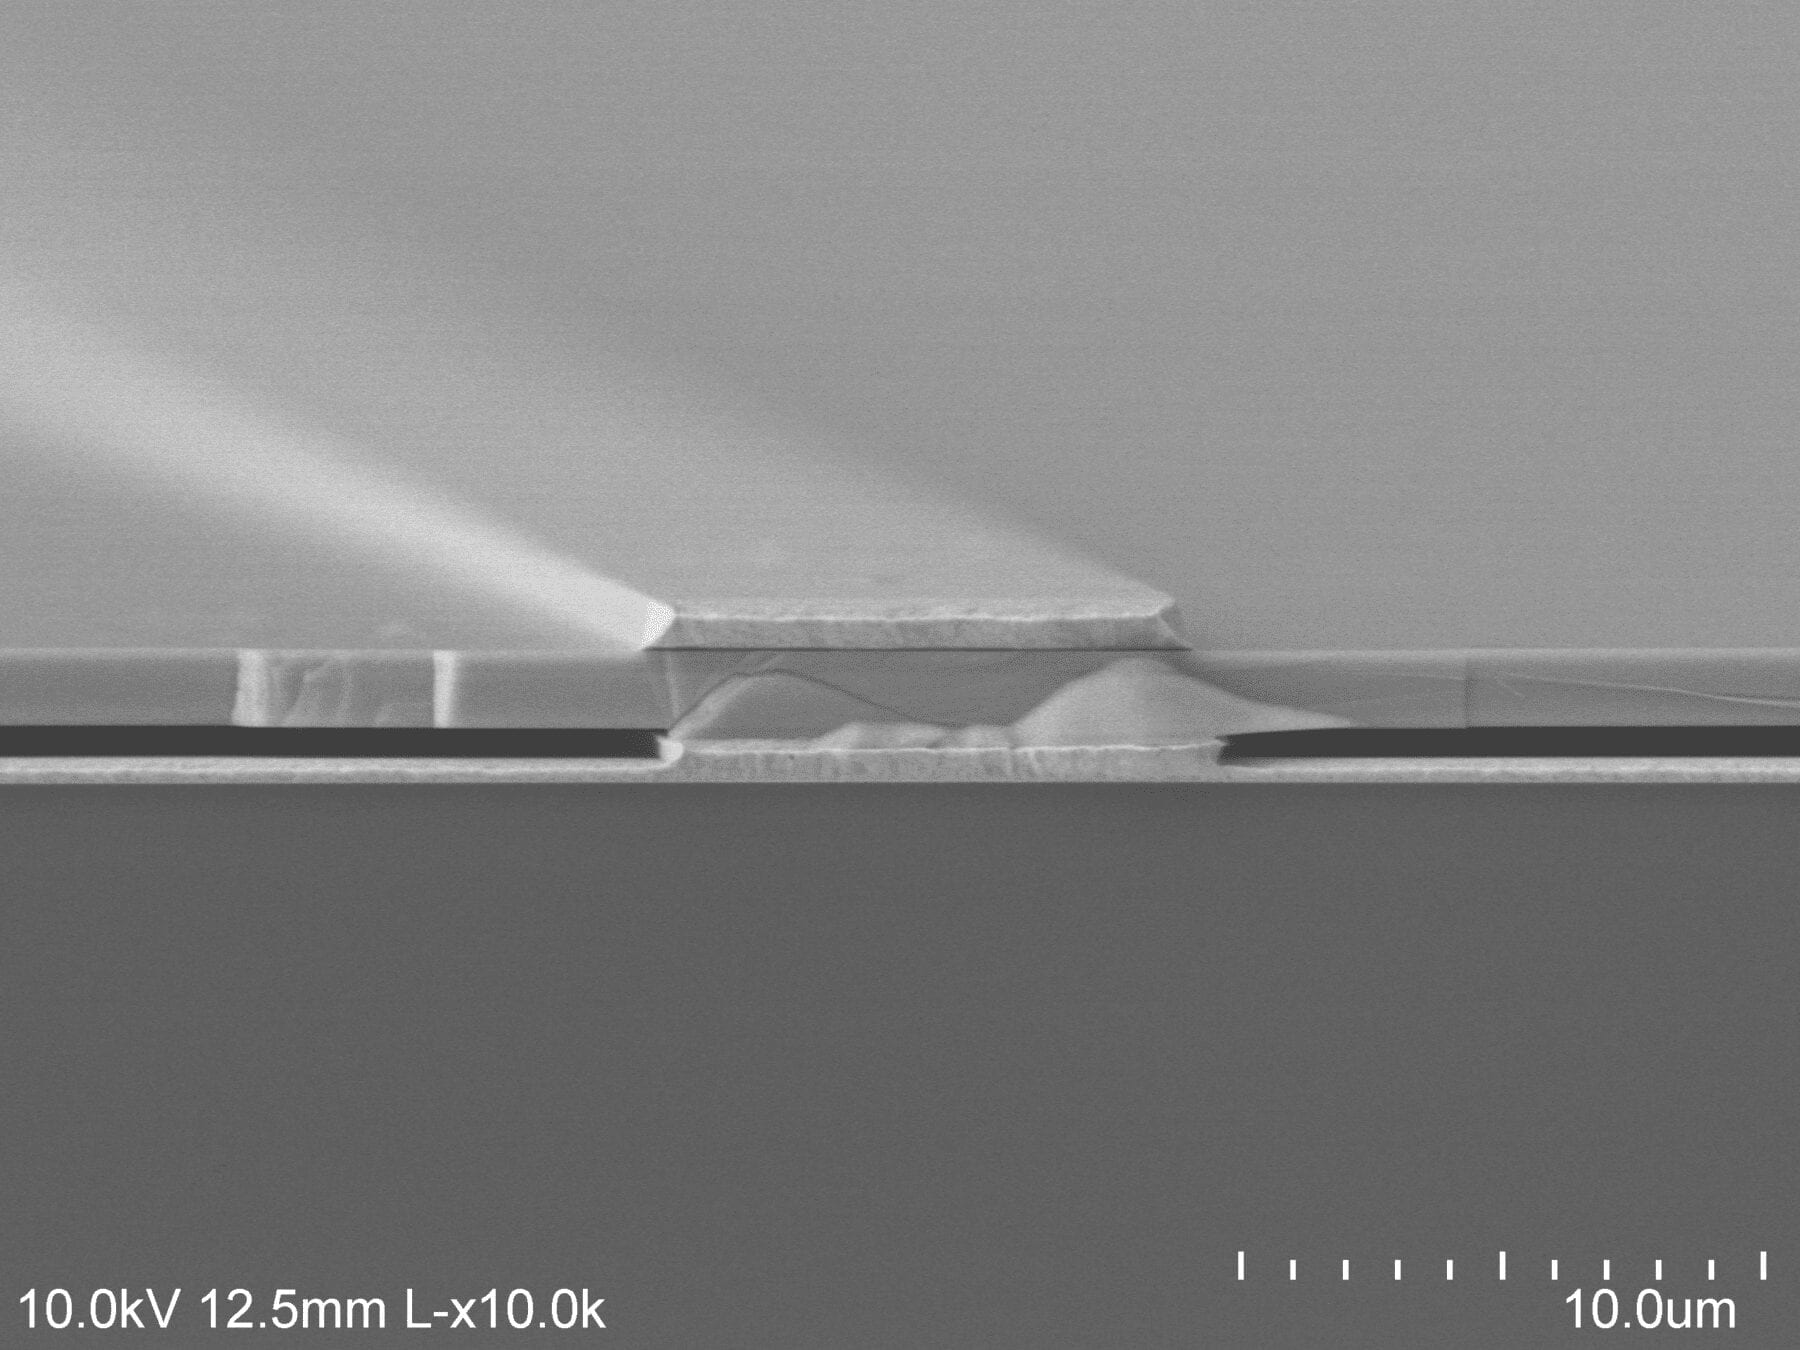 The electron microscope image shows the air (darkest gray) sandwiched between the gold backing at the bottom and the semiconductor at the top, supported on gold beams. Image credit: Dejiu Fan, U-M Optoelectronic Components and Materials Group